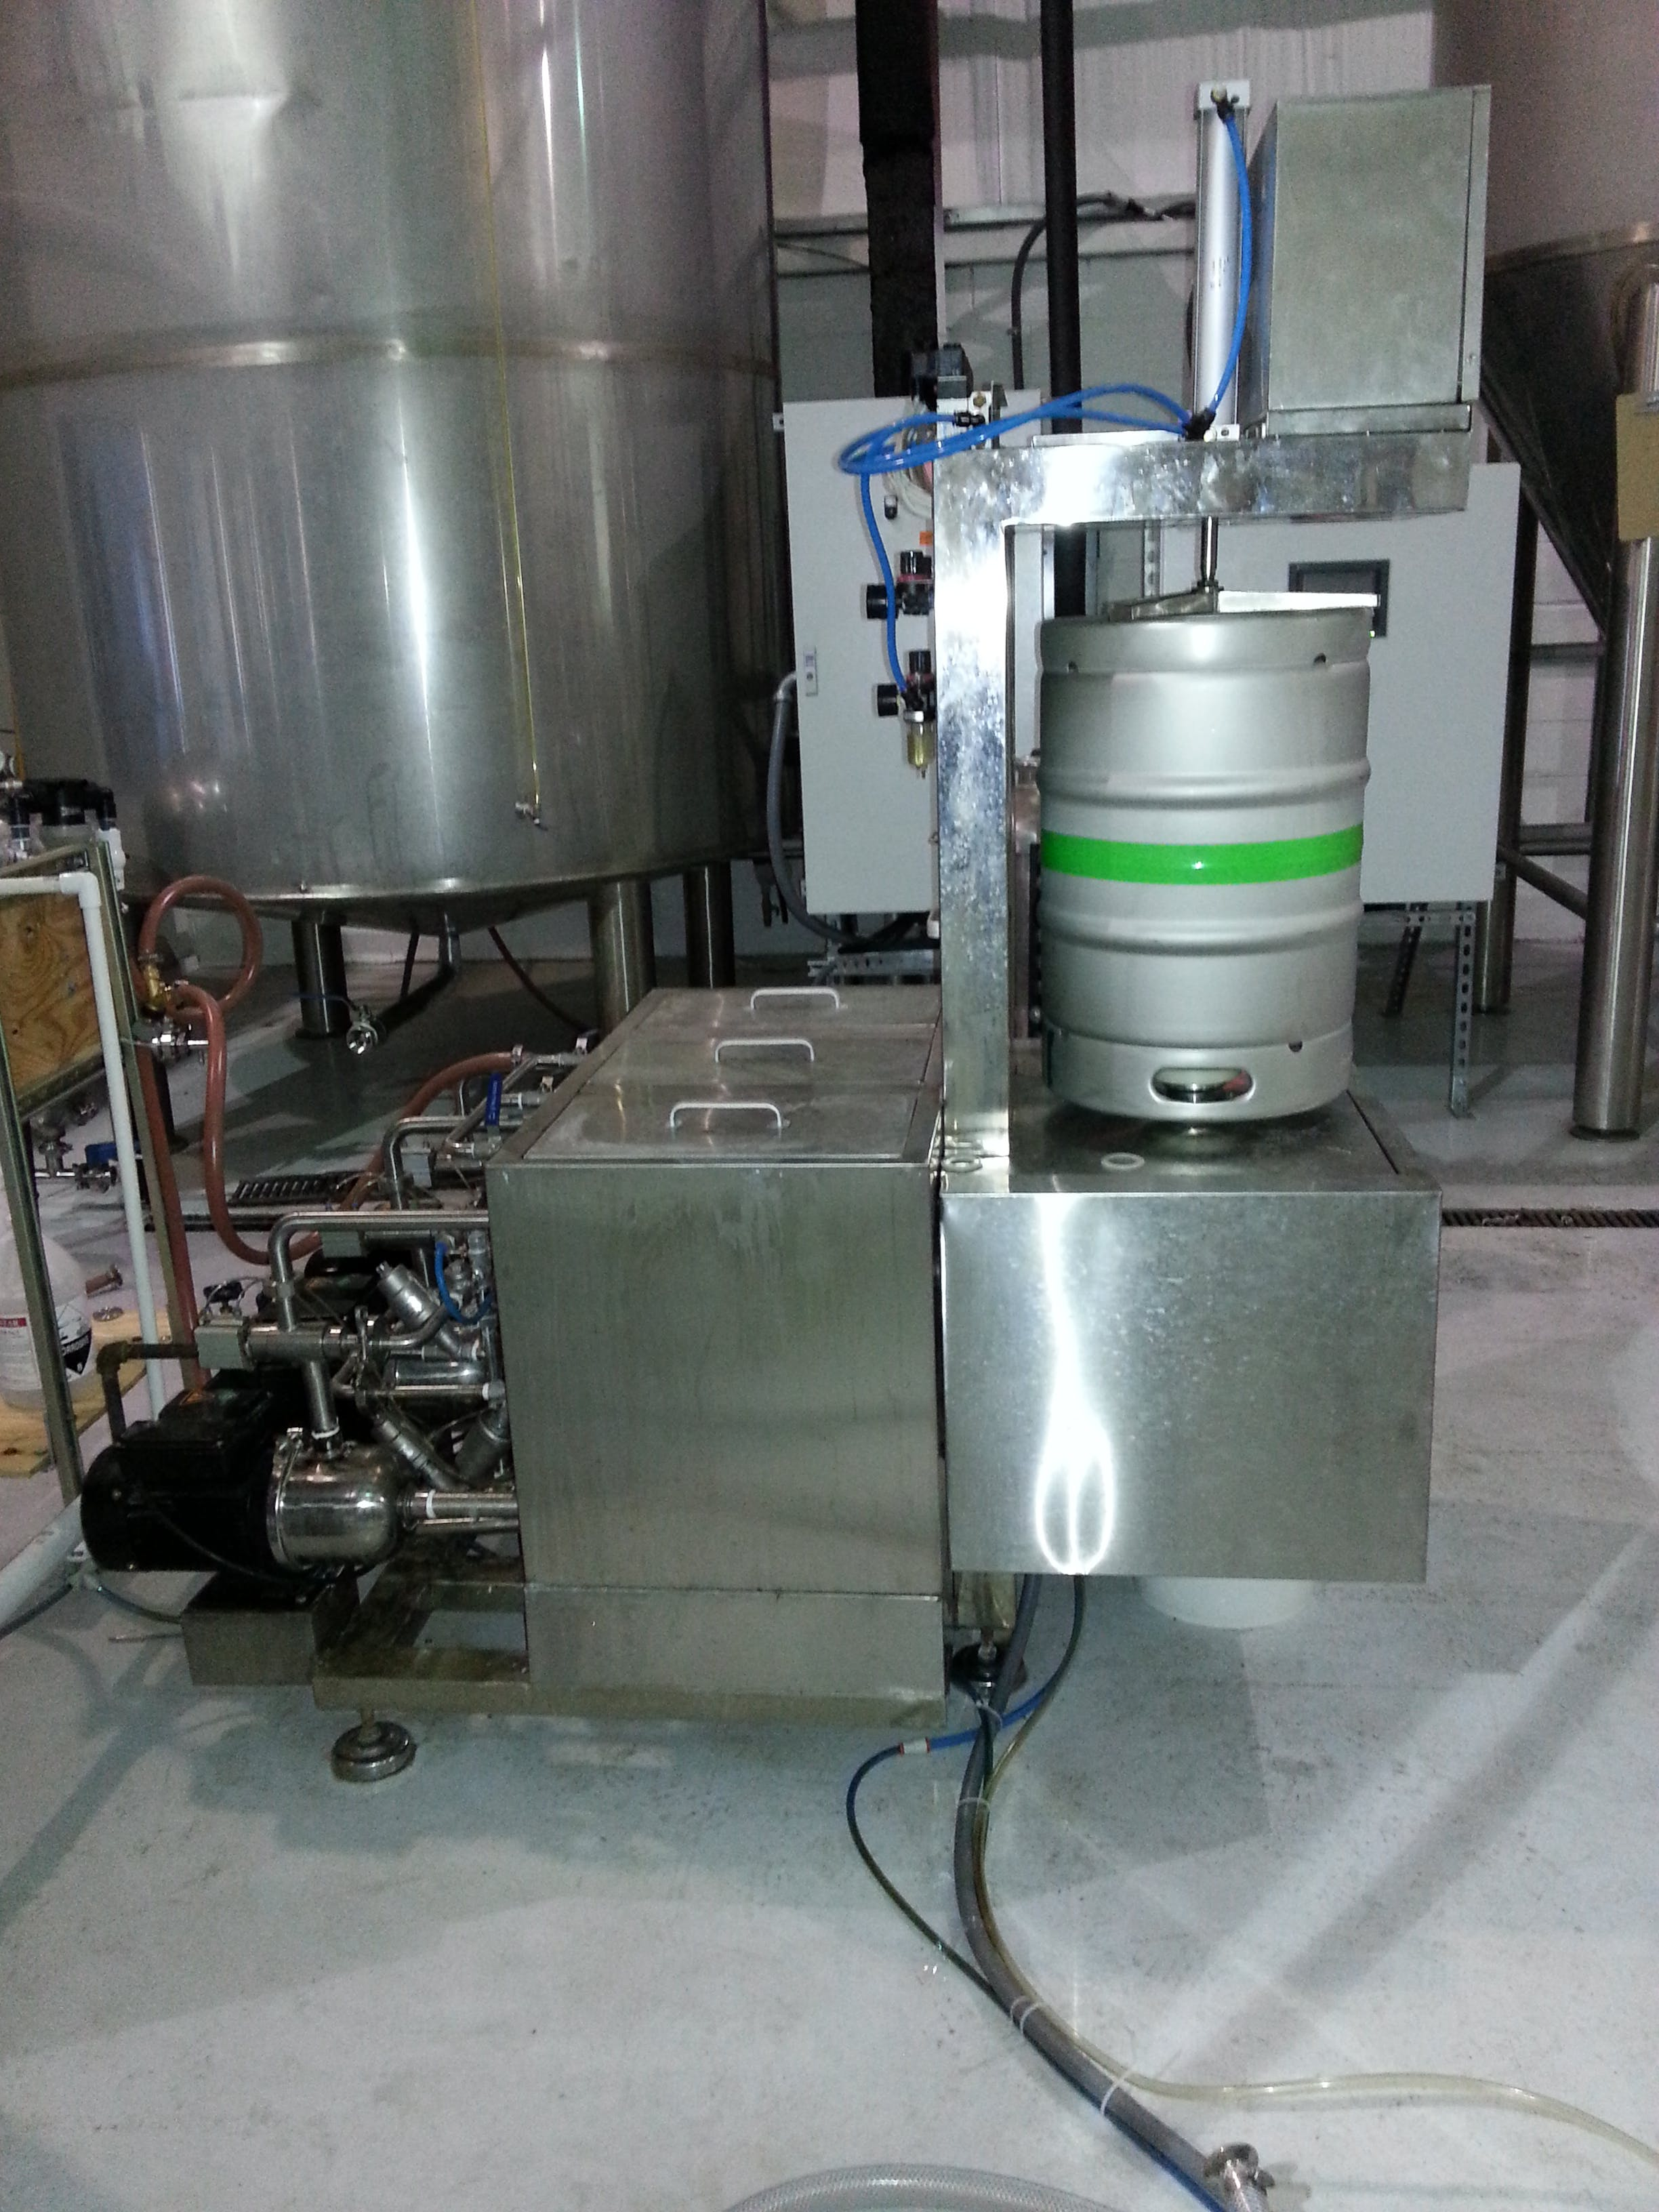 Keg Washer Filler Keg washer sold by Brew Bev